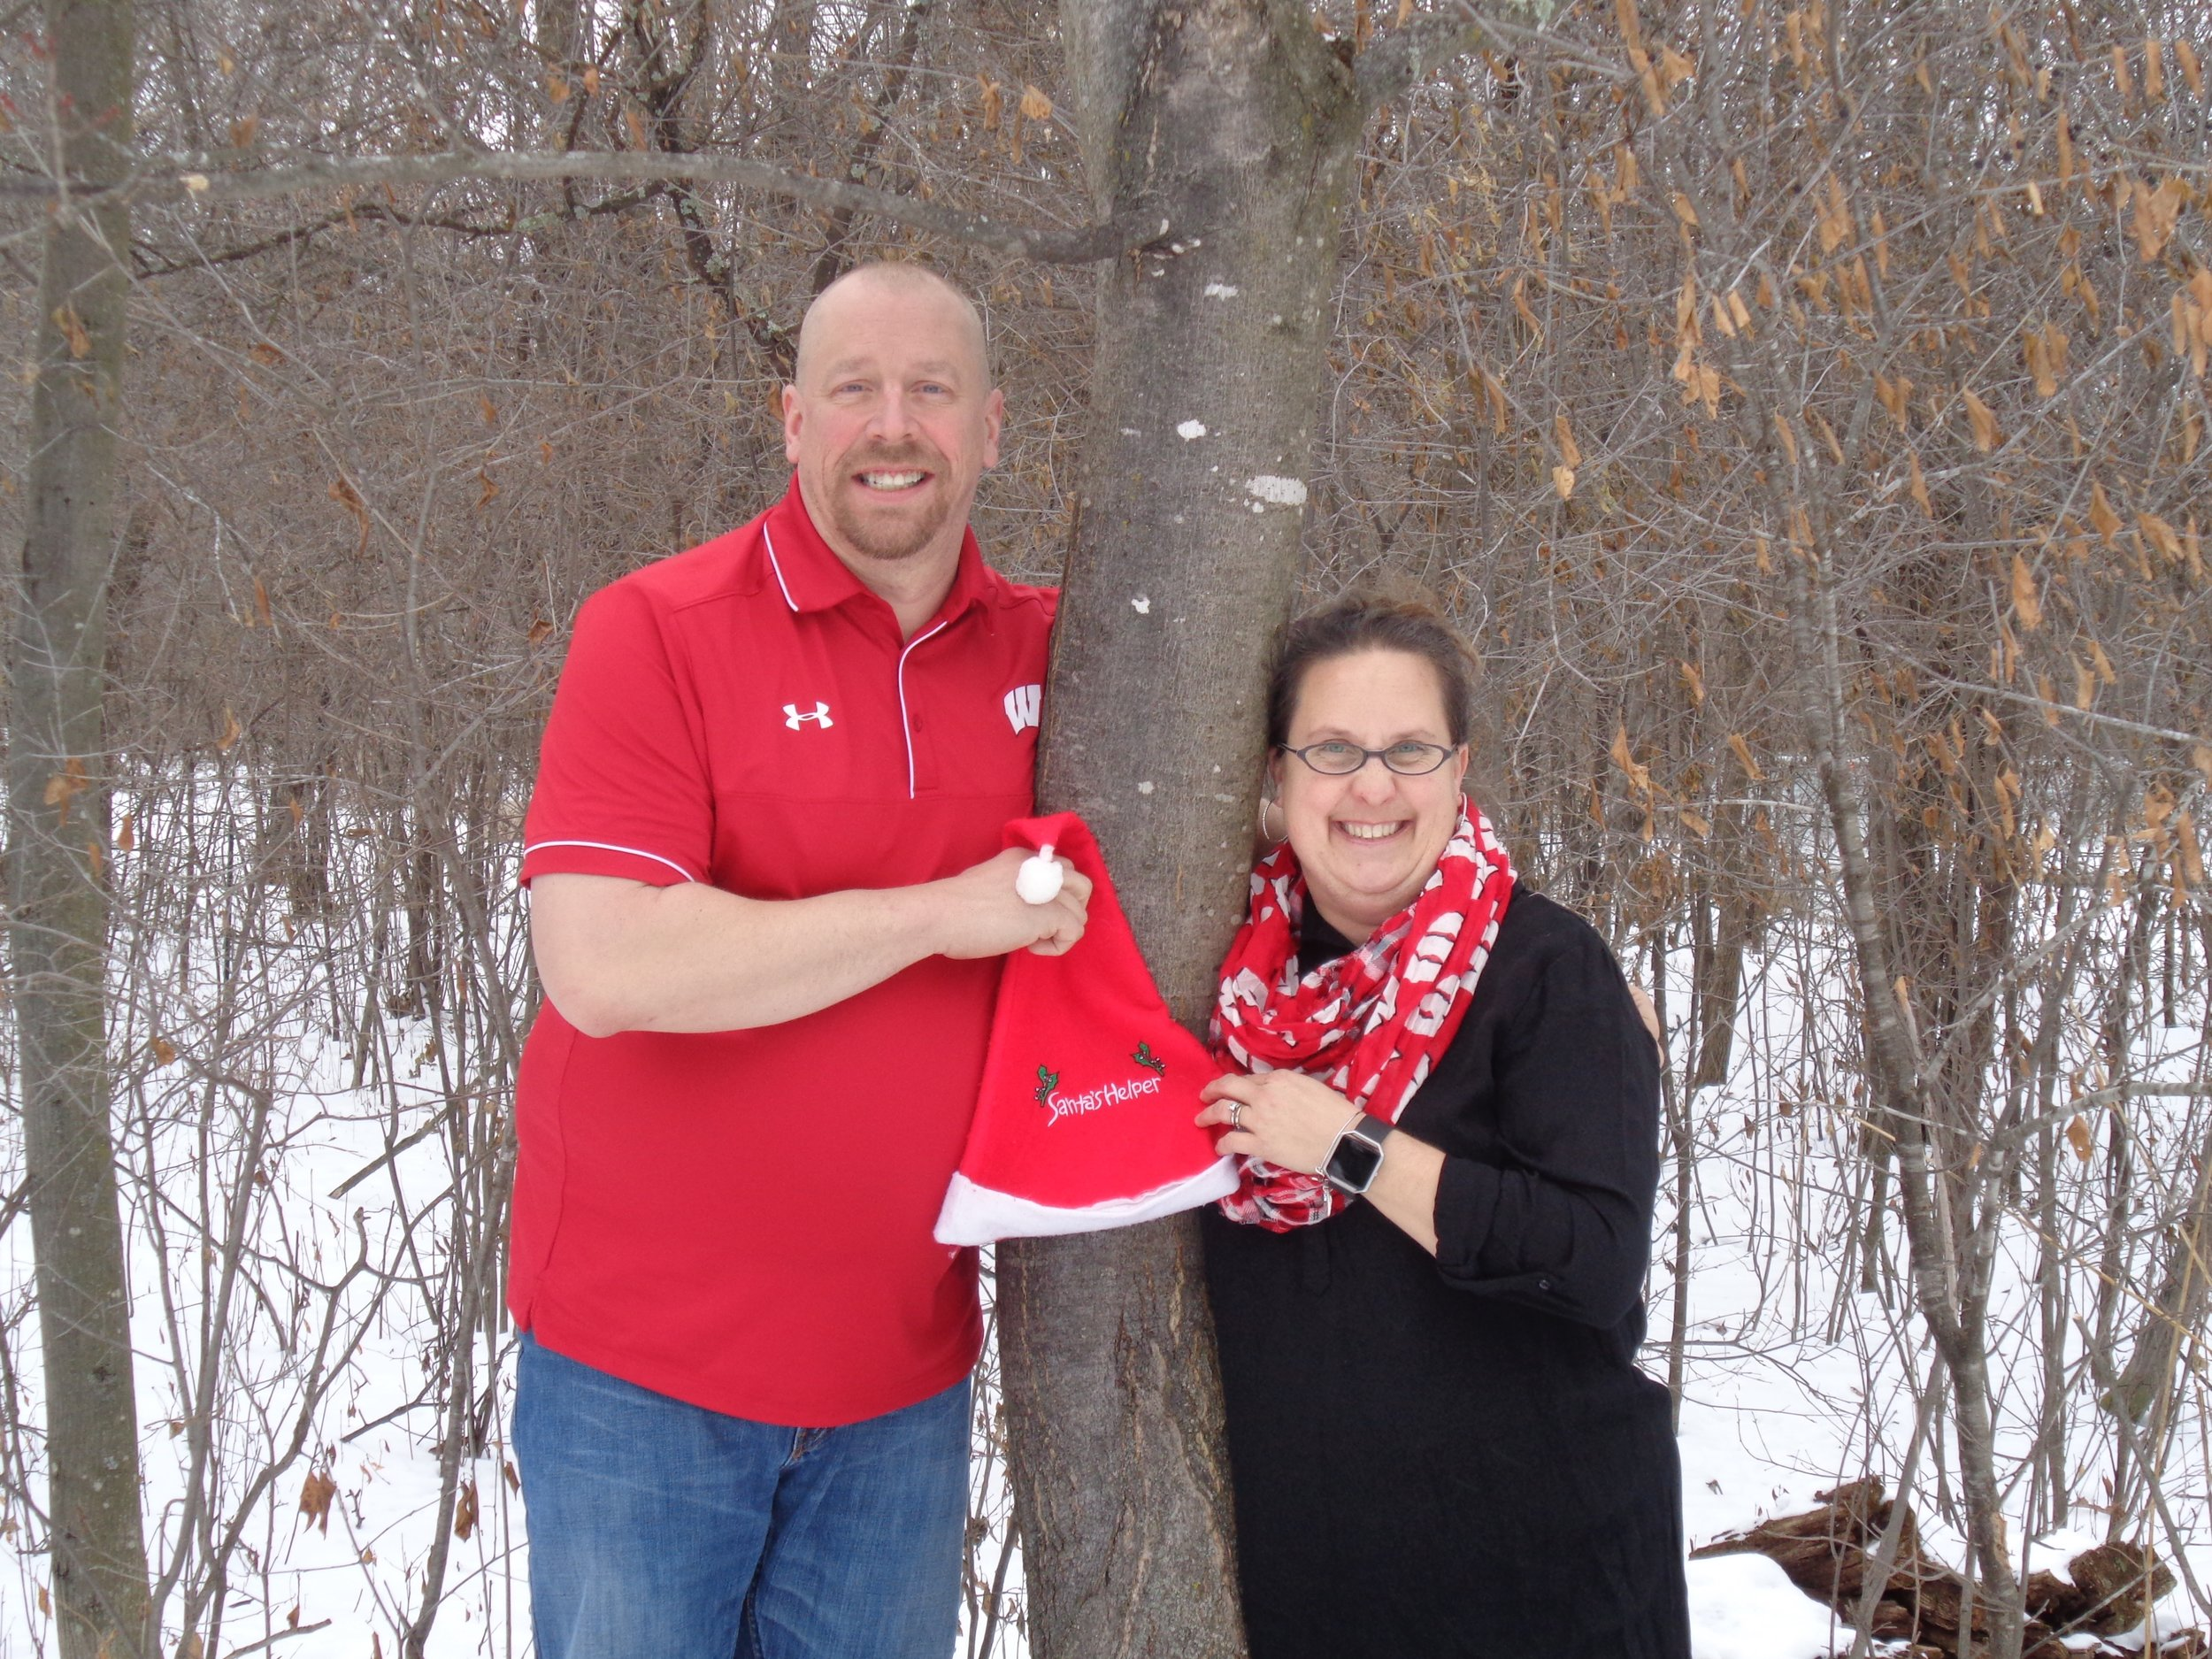 Fun loving couple from Madison Wisconsin excited to adopt